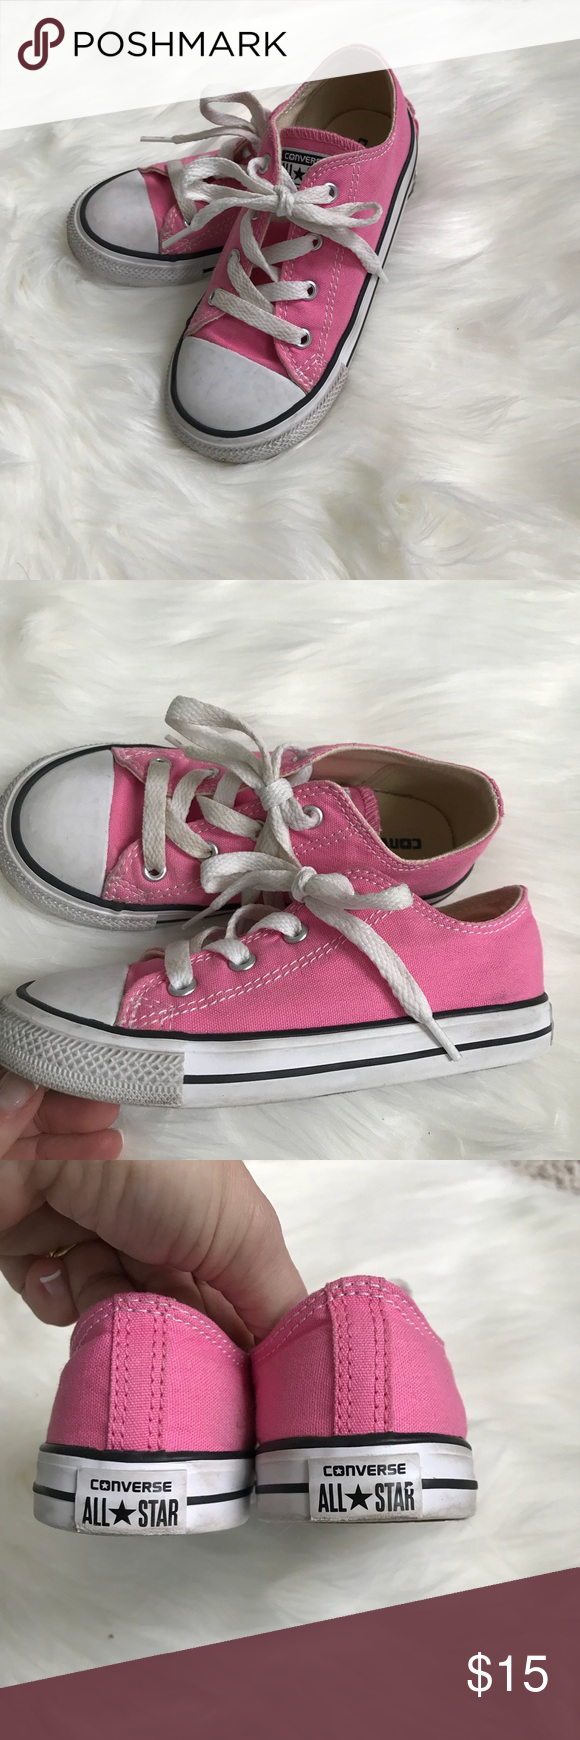 1c3e70547220 Converse kids pink size 10 These are little girls toddler converse tennis  shoes Size 10.